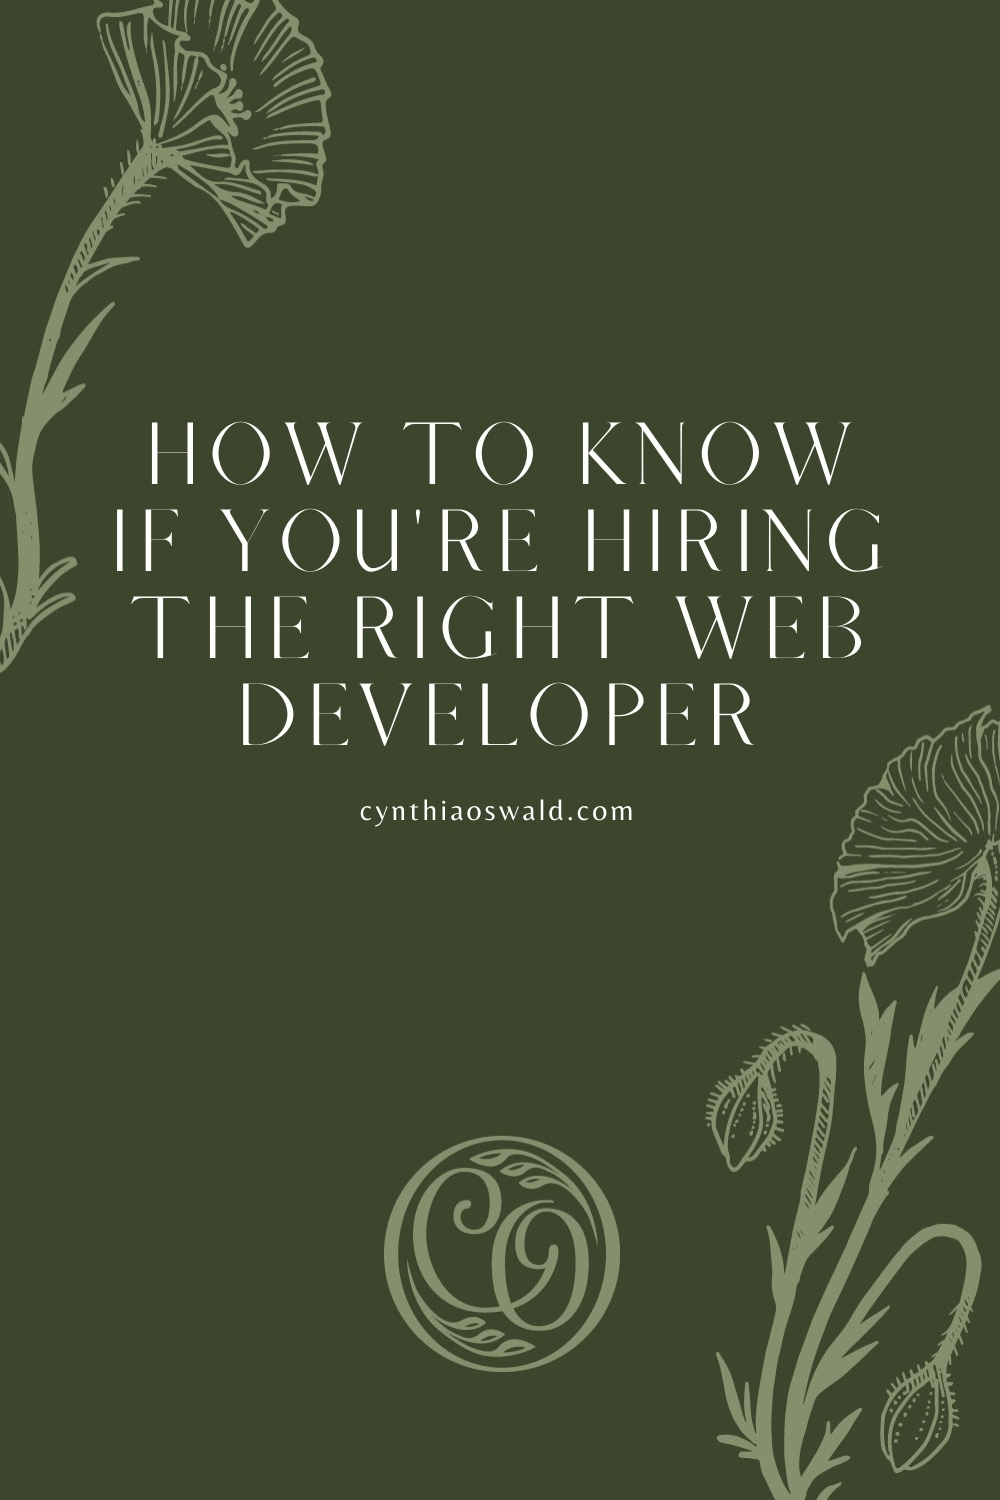 How to know if you're hiring the right web developer